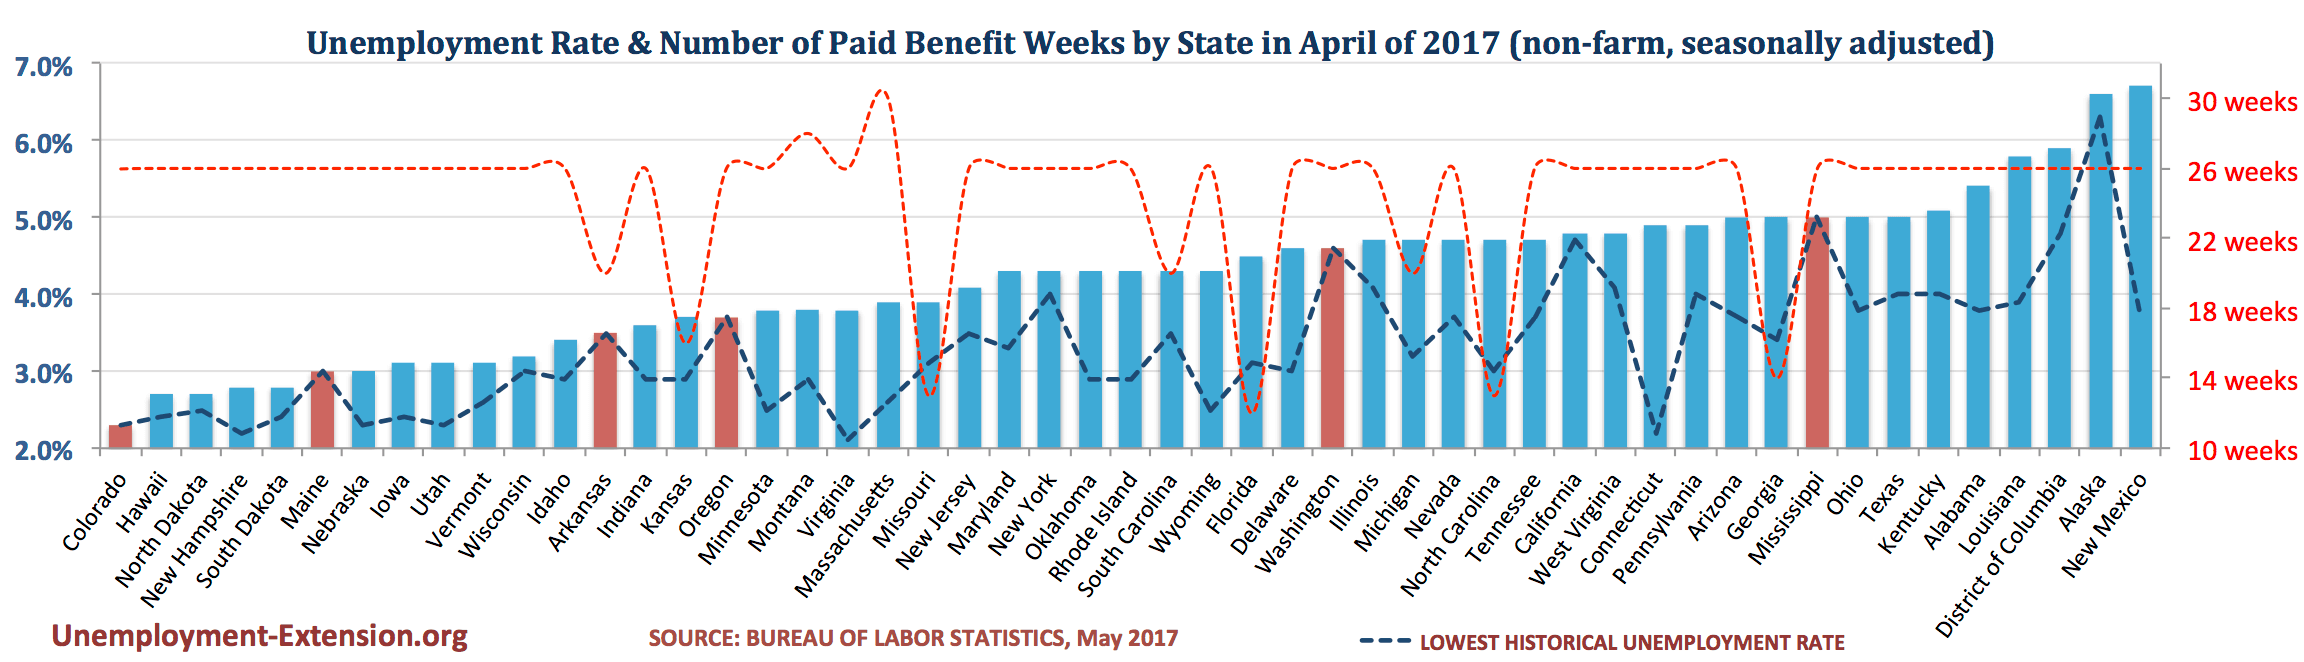 Unemployment Rate and Number of Paid Unemployment Benefit weeks by State (non-farm, seasonally adjusted) in March of 2017